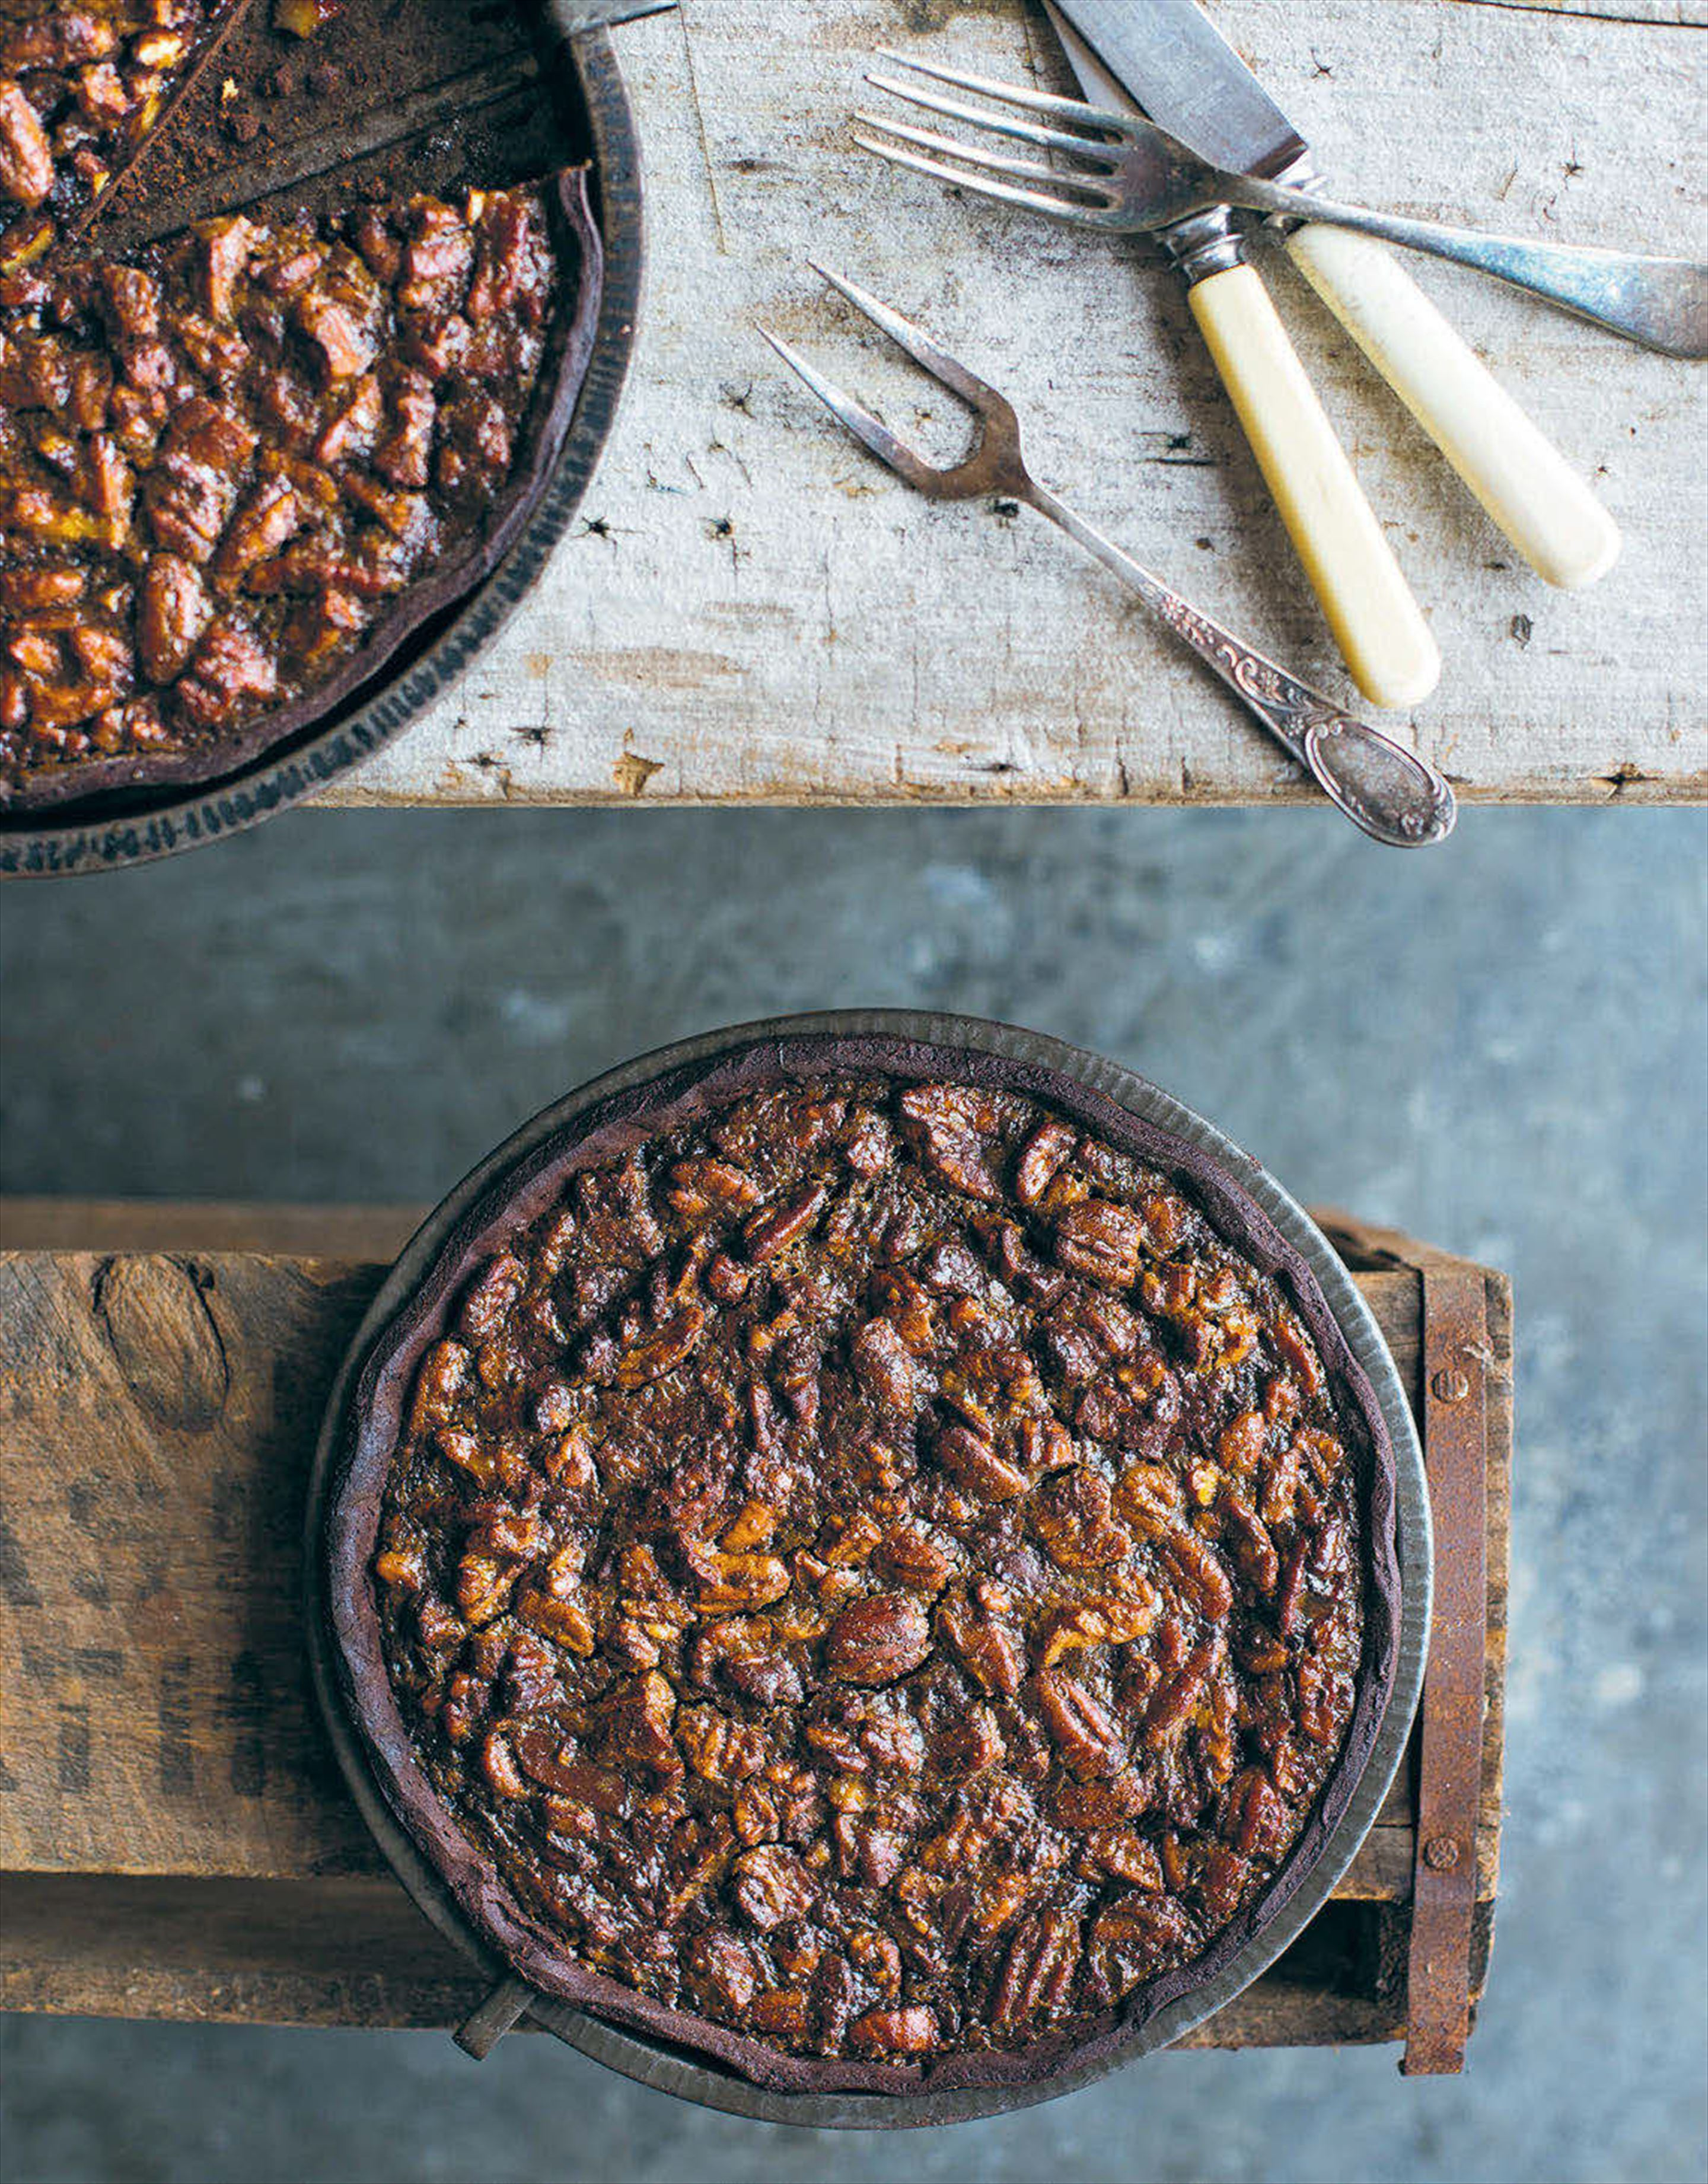 Golden syrup and chocolate pecan pies